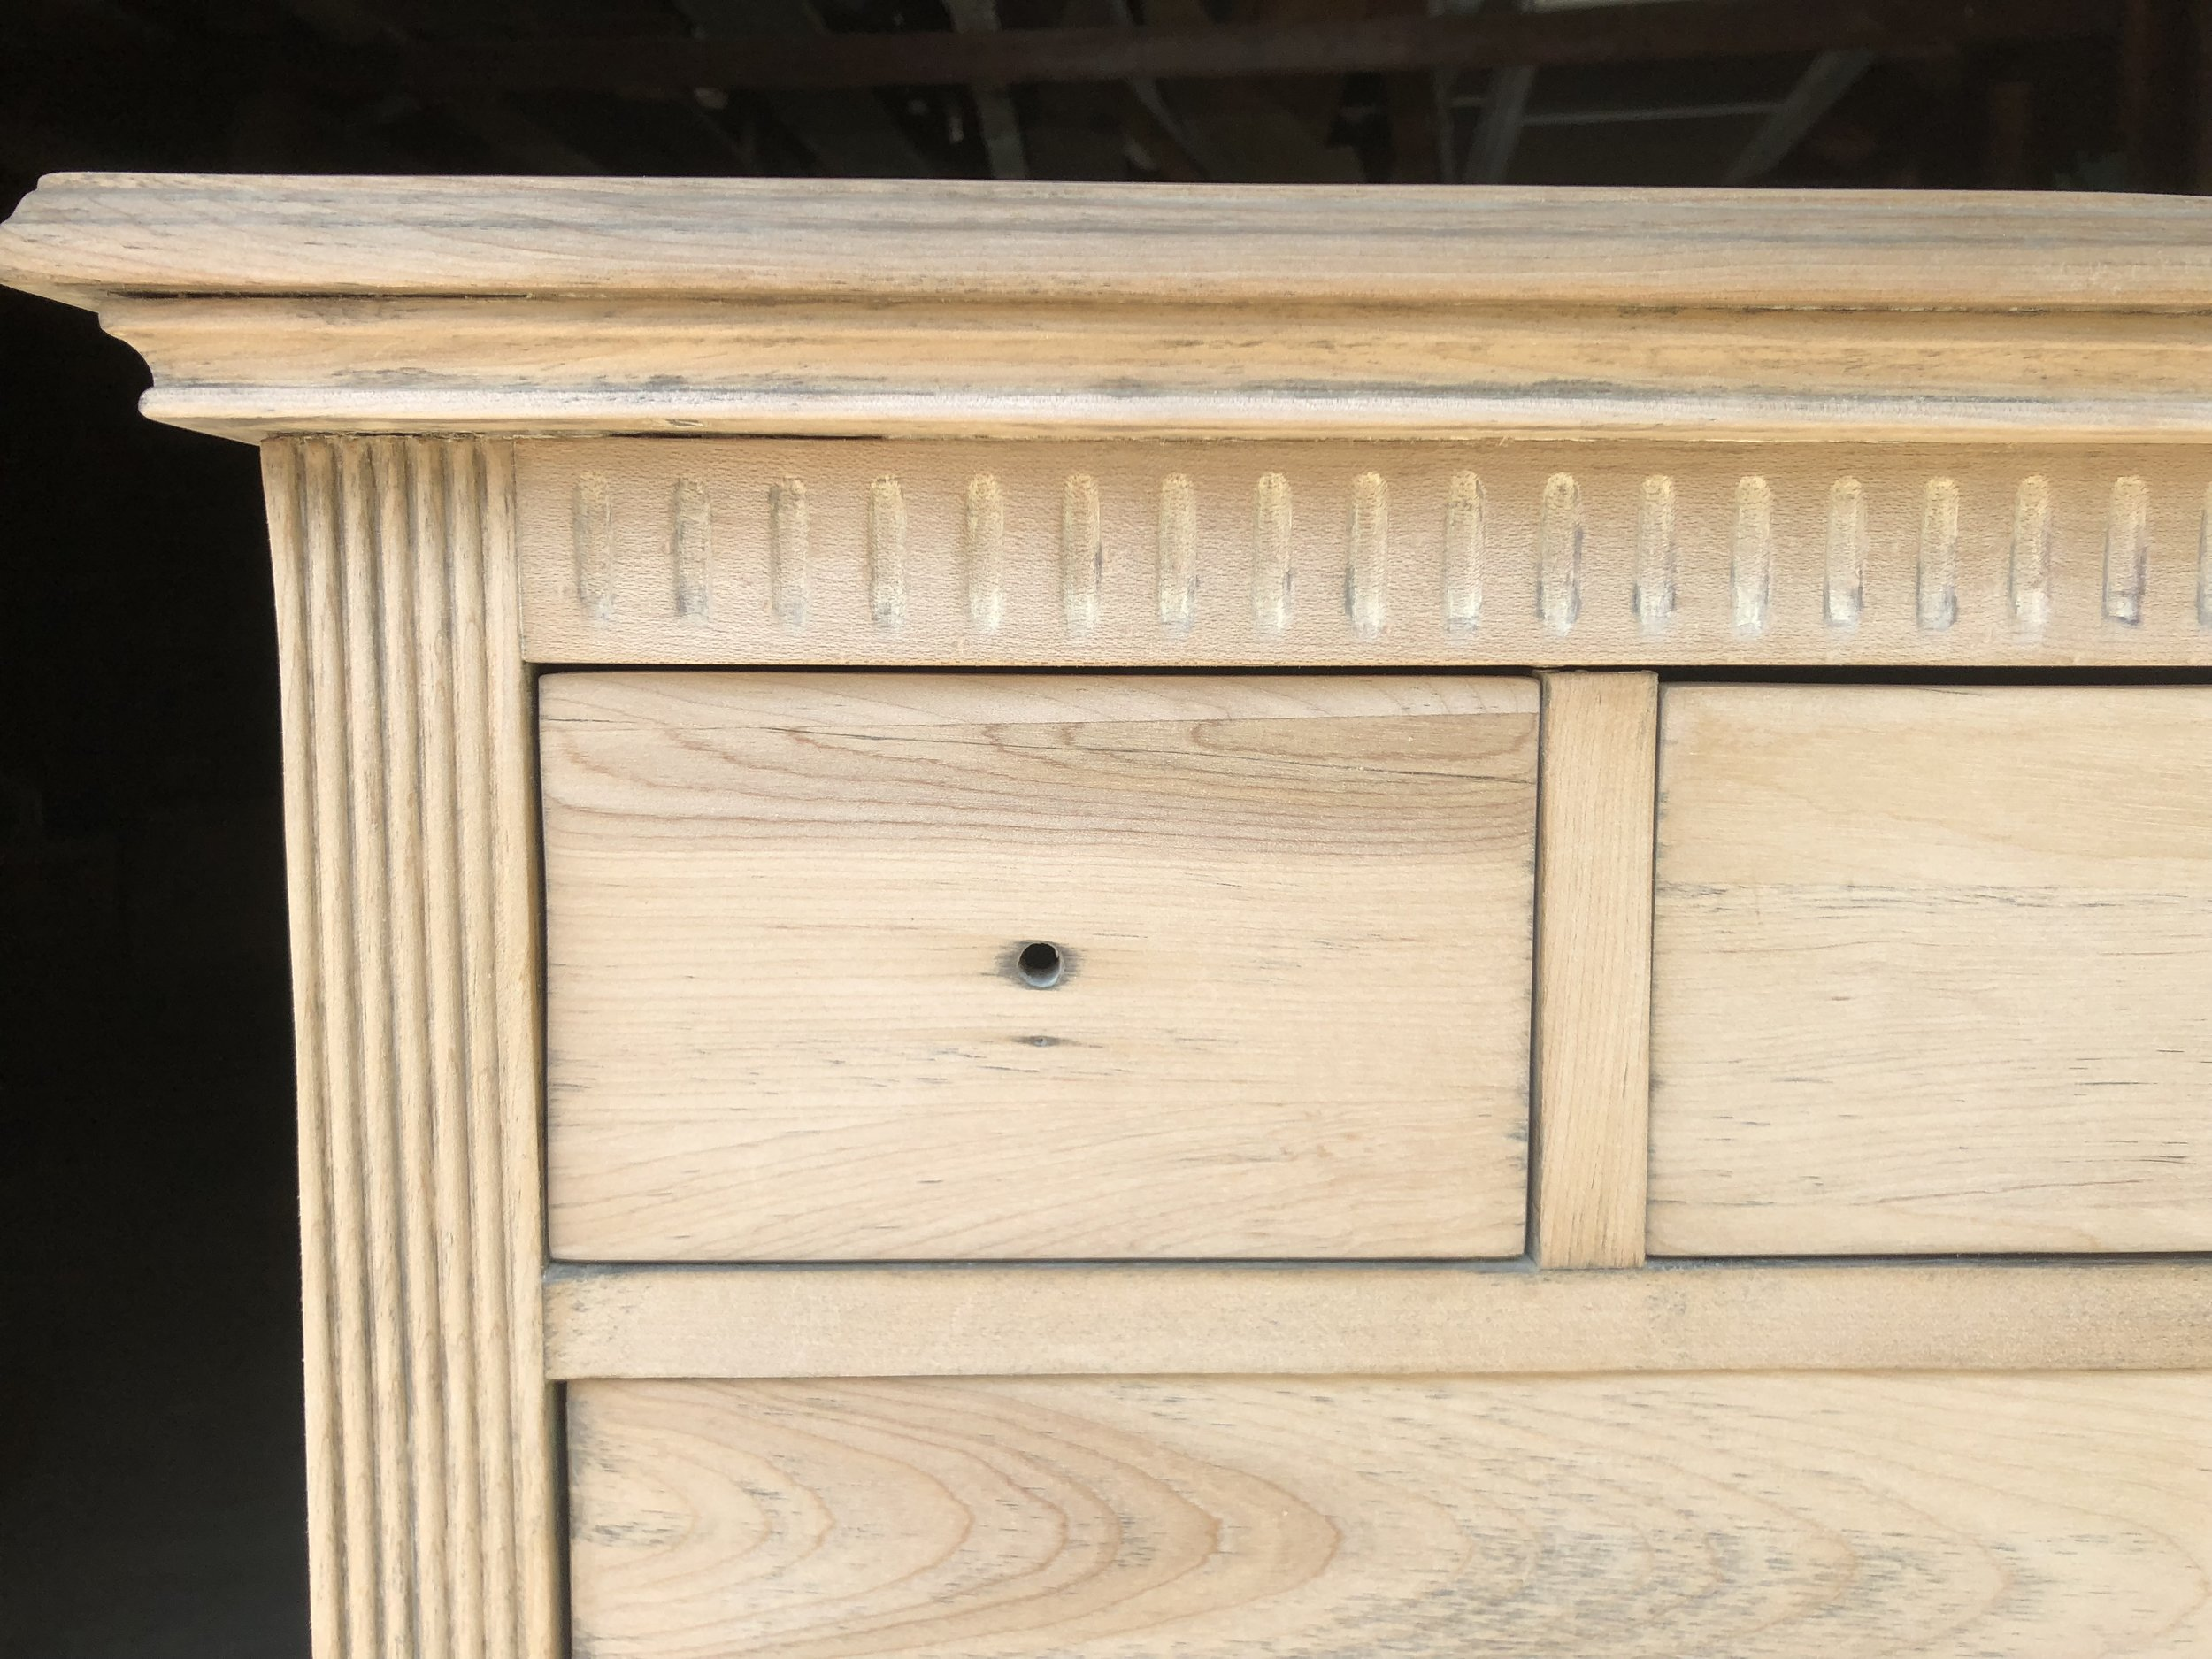 A snippet from a previous  dresser restoration project  of mine - now restored for another 100 years of use and enjoyment.